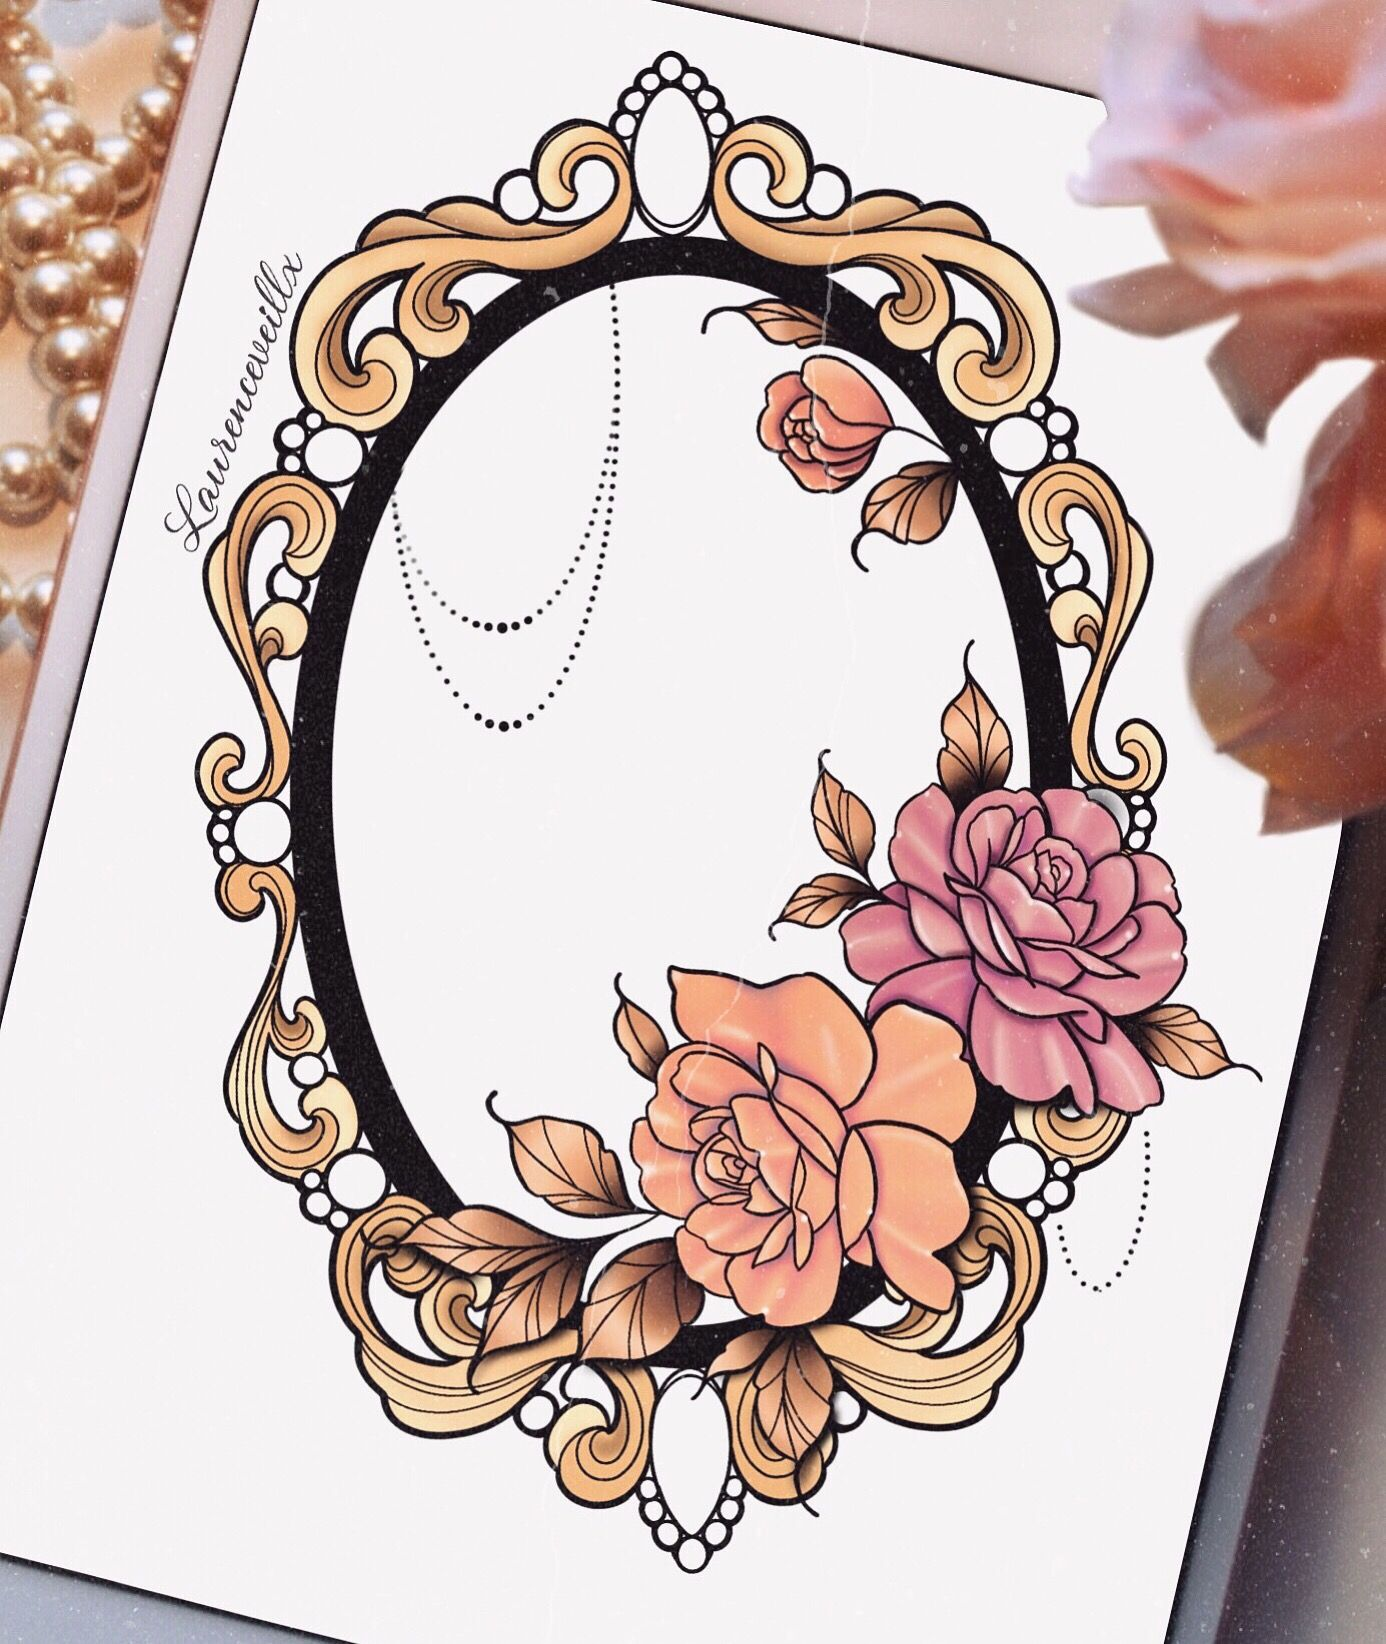 Mirror Roses Gold Flower Neotraditional Tattoo Design Ideas